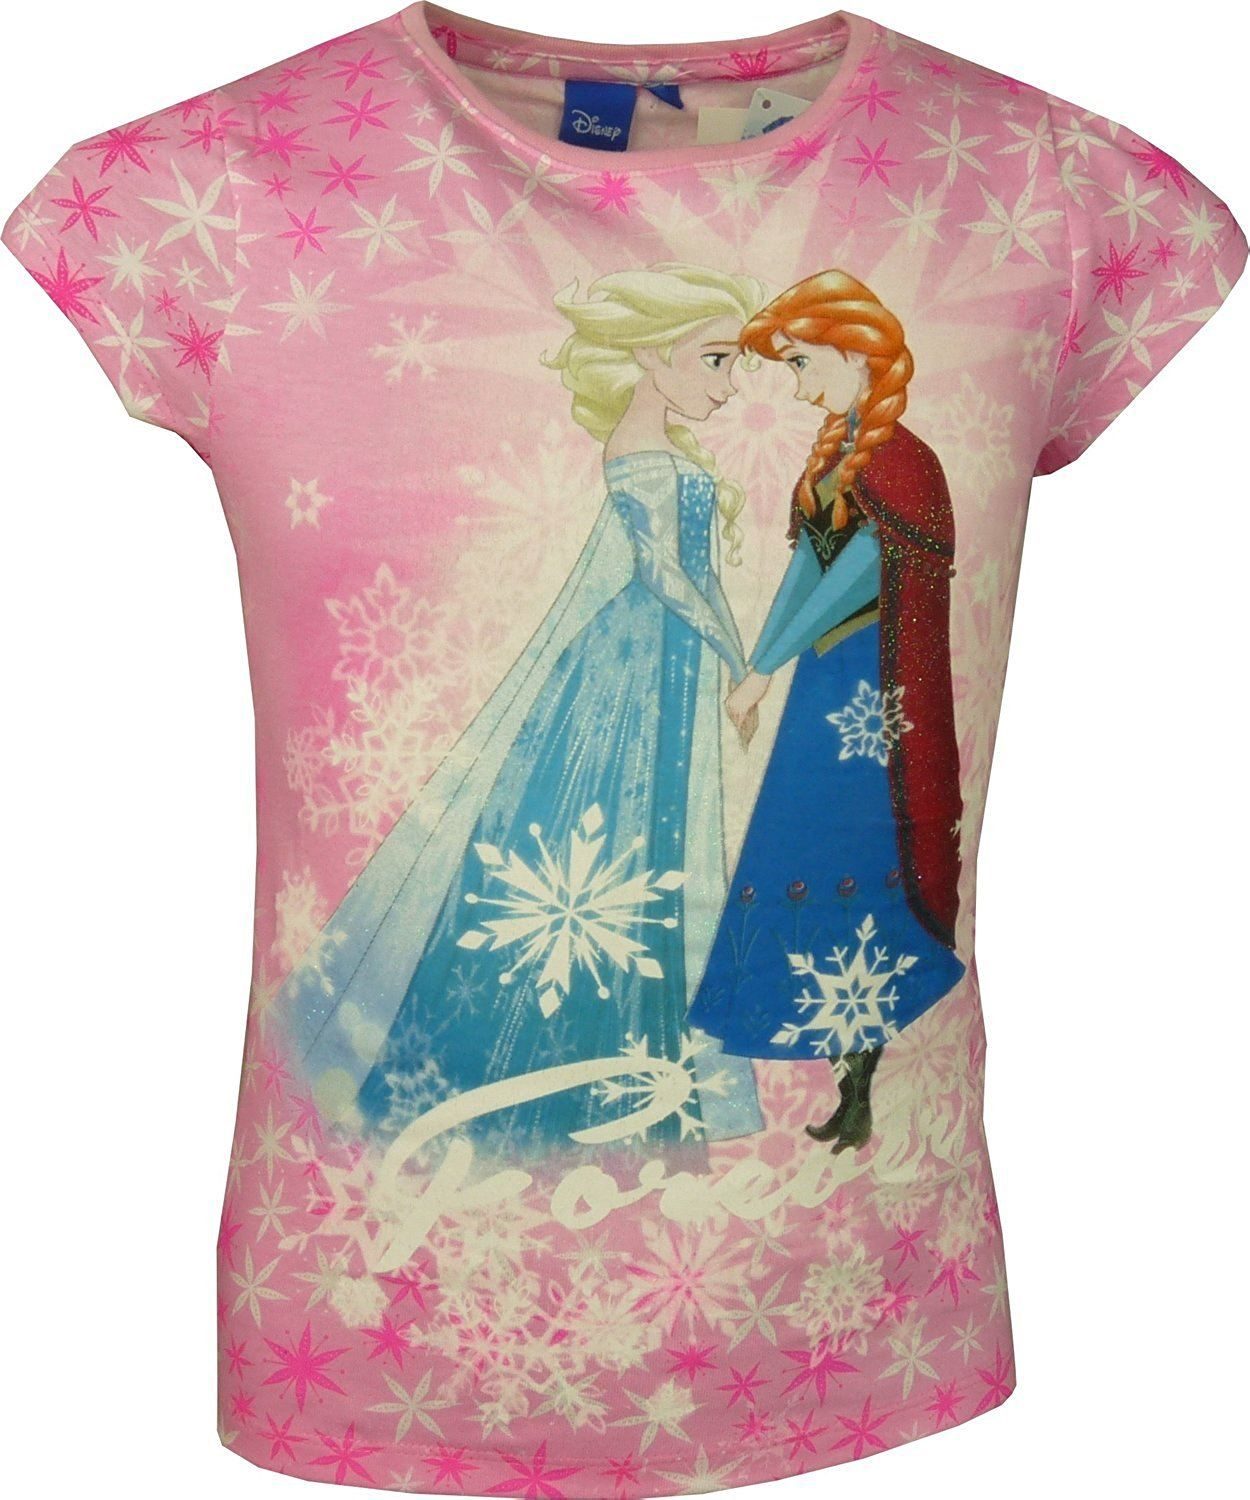 Fille-Disney-Princess-Sofia-Frozen-Minnie-Mouse-Paw-Patrol-T-shirt